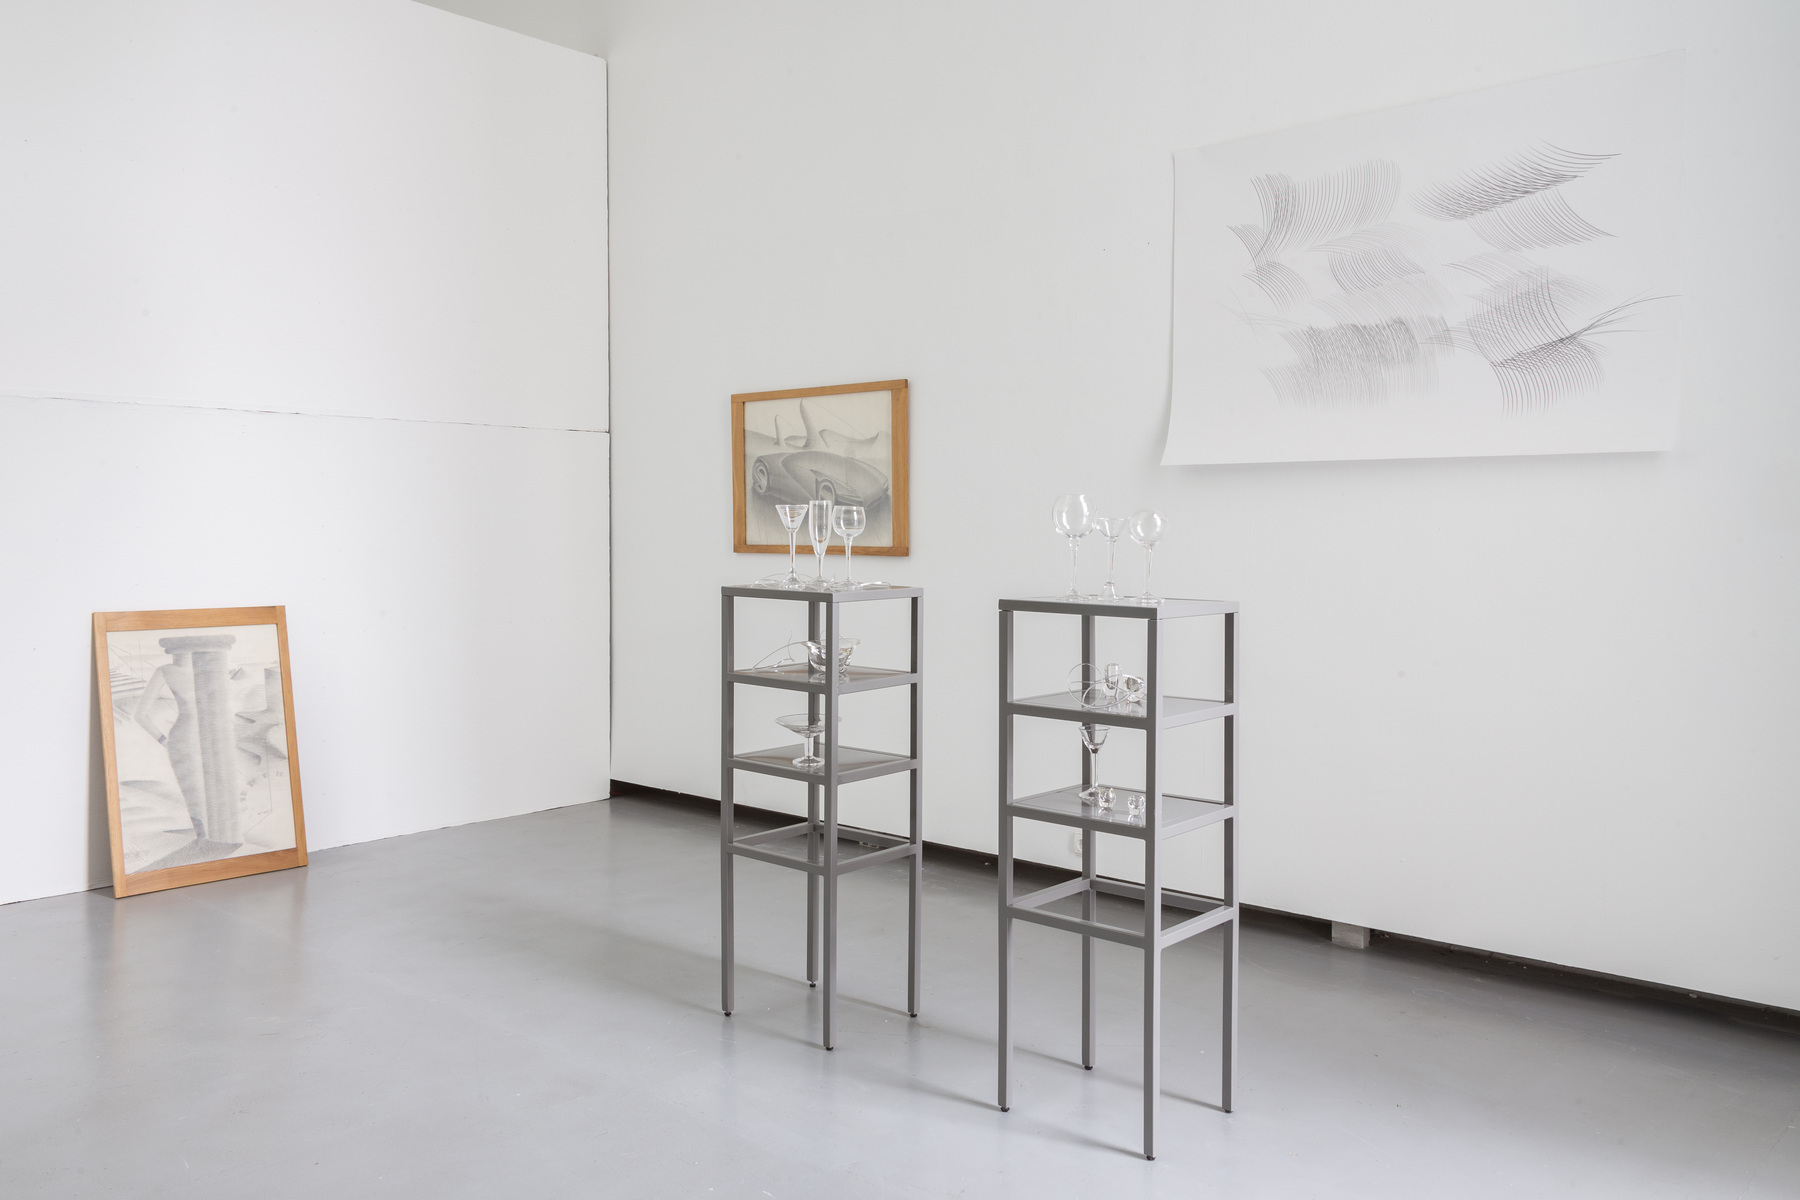 b15 - Solo exhibition at CAC Kitchen by Antanas Gerlikas